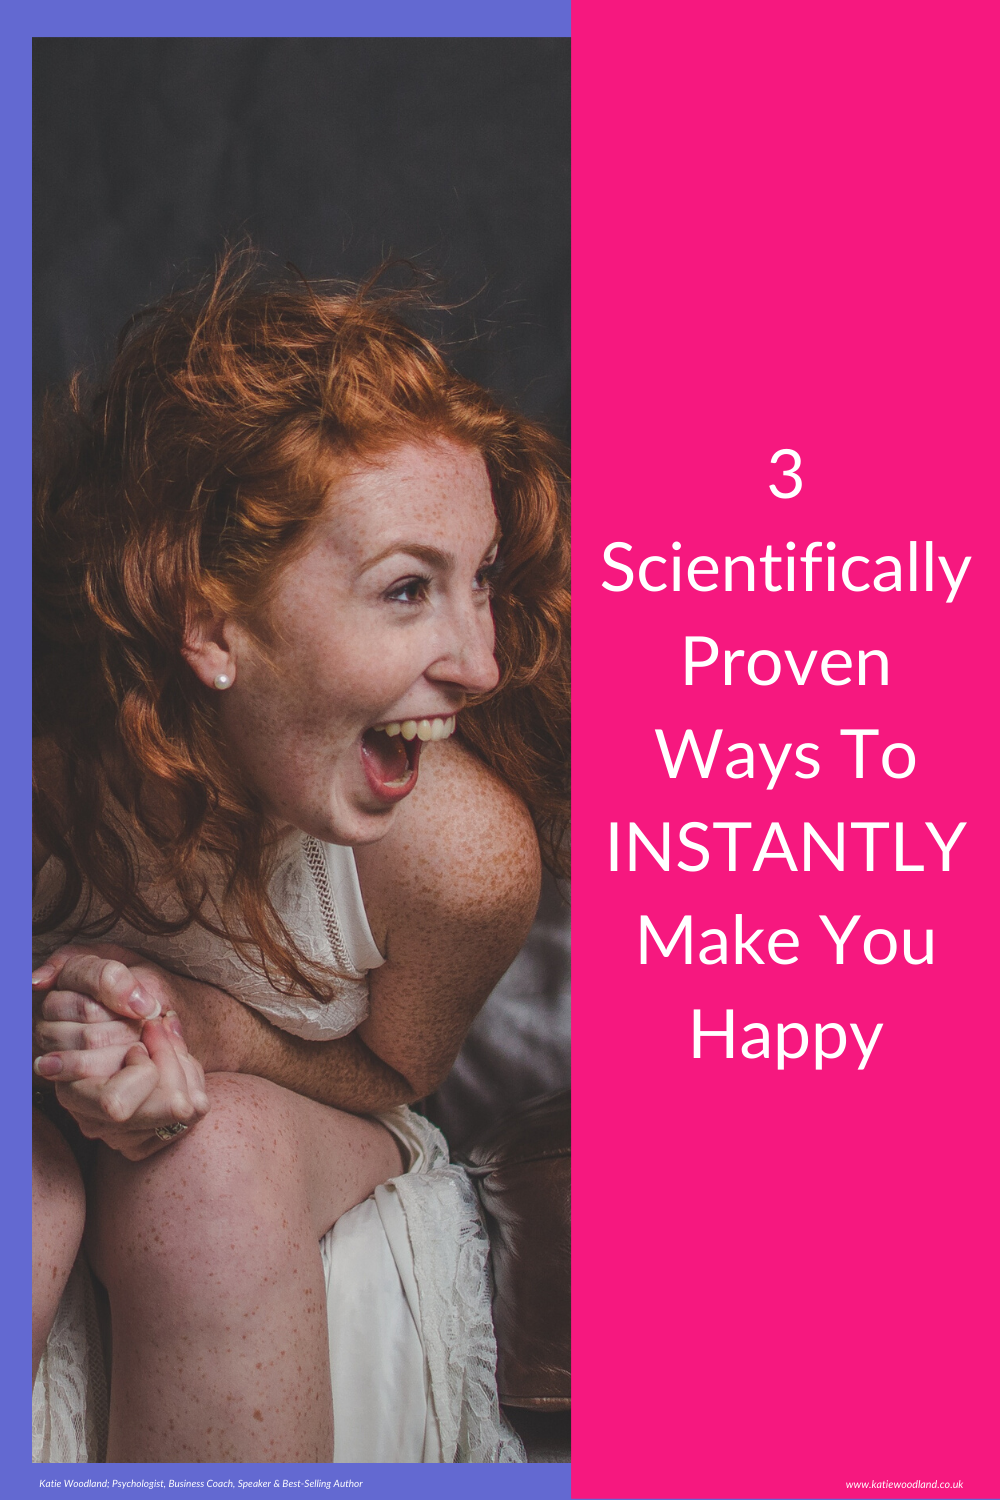 3 Scientifically Proven Ways To INSTANTLY Make You Happy